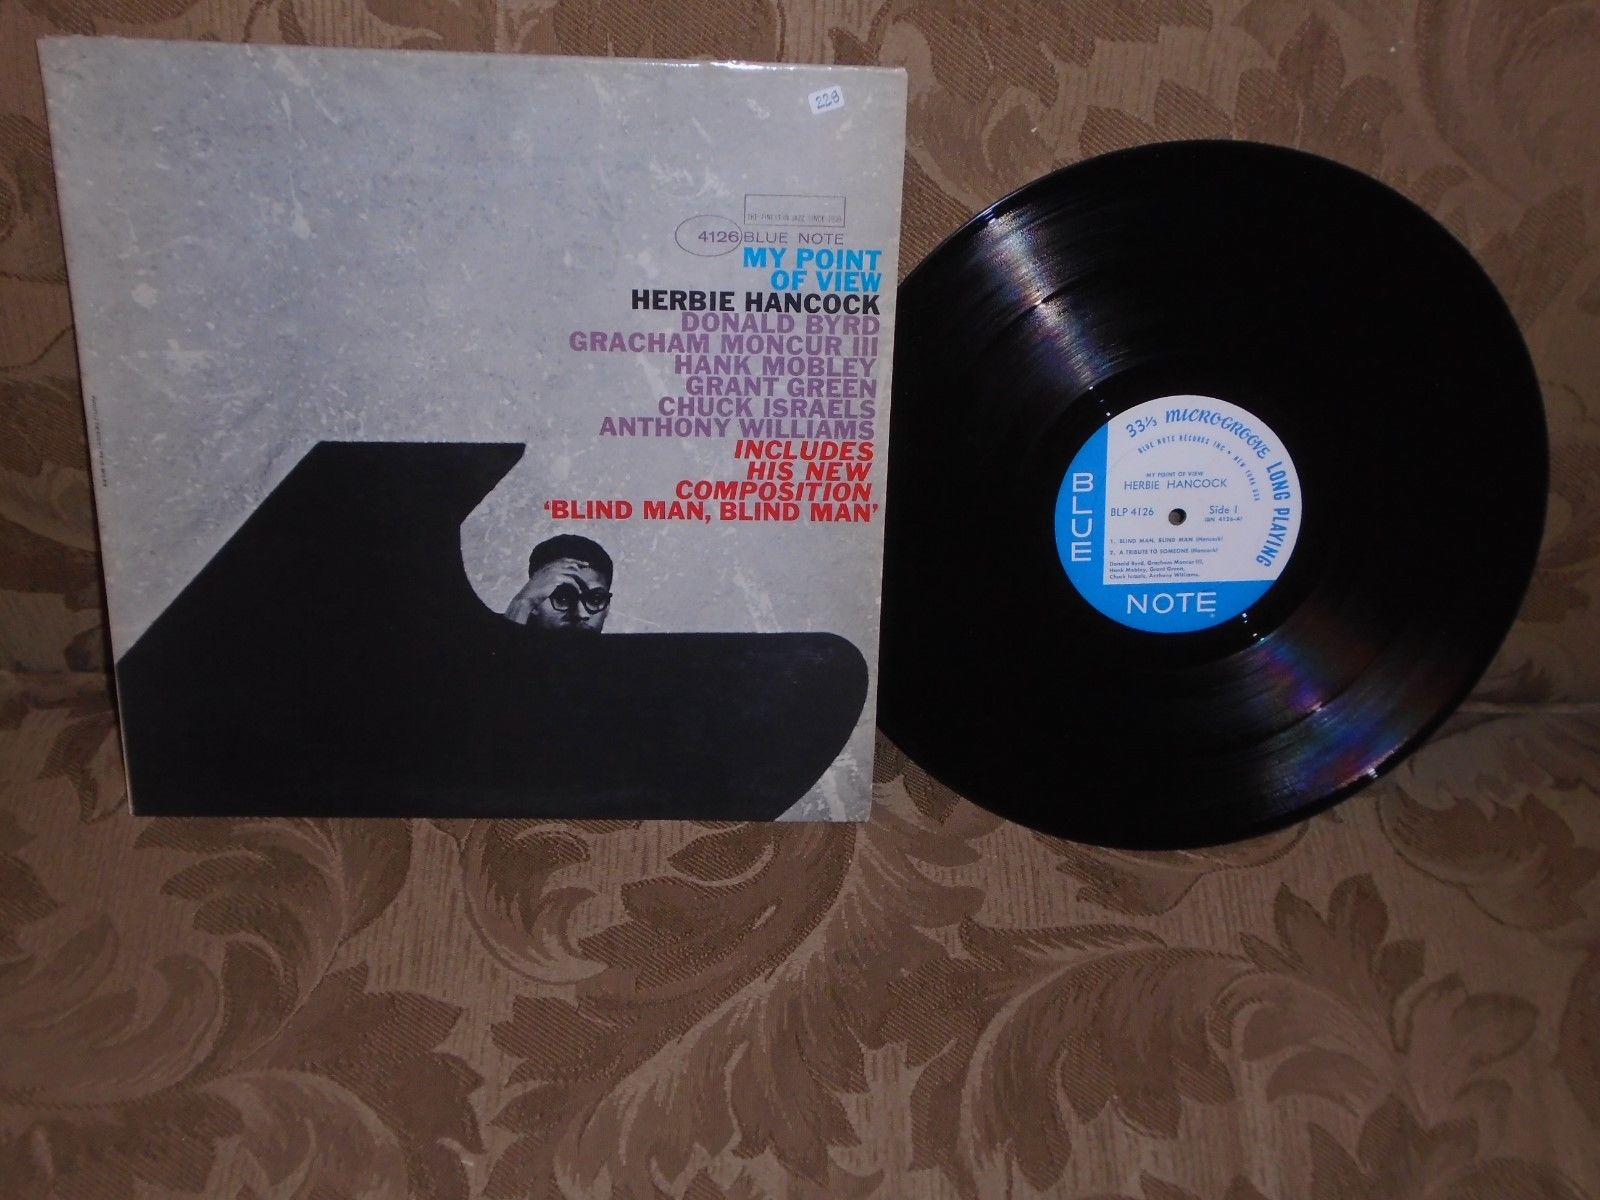 Herbie Hancock My Point of View Blue Note 4126 mono org Grant Green Hank Mobley